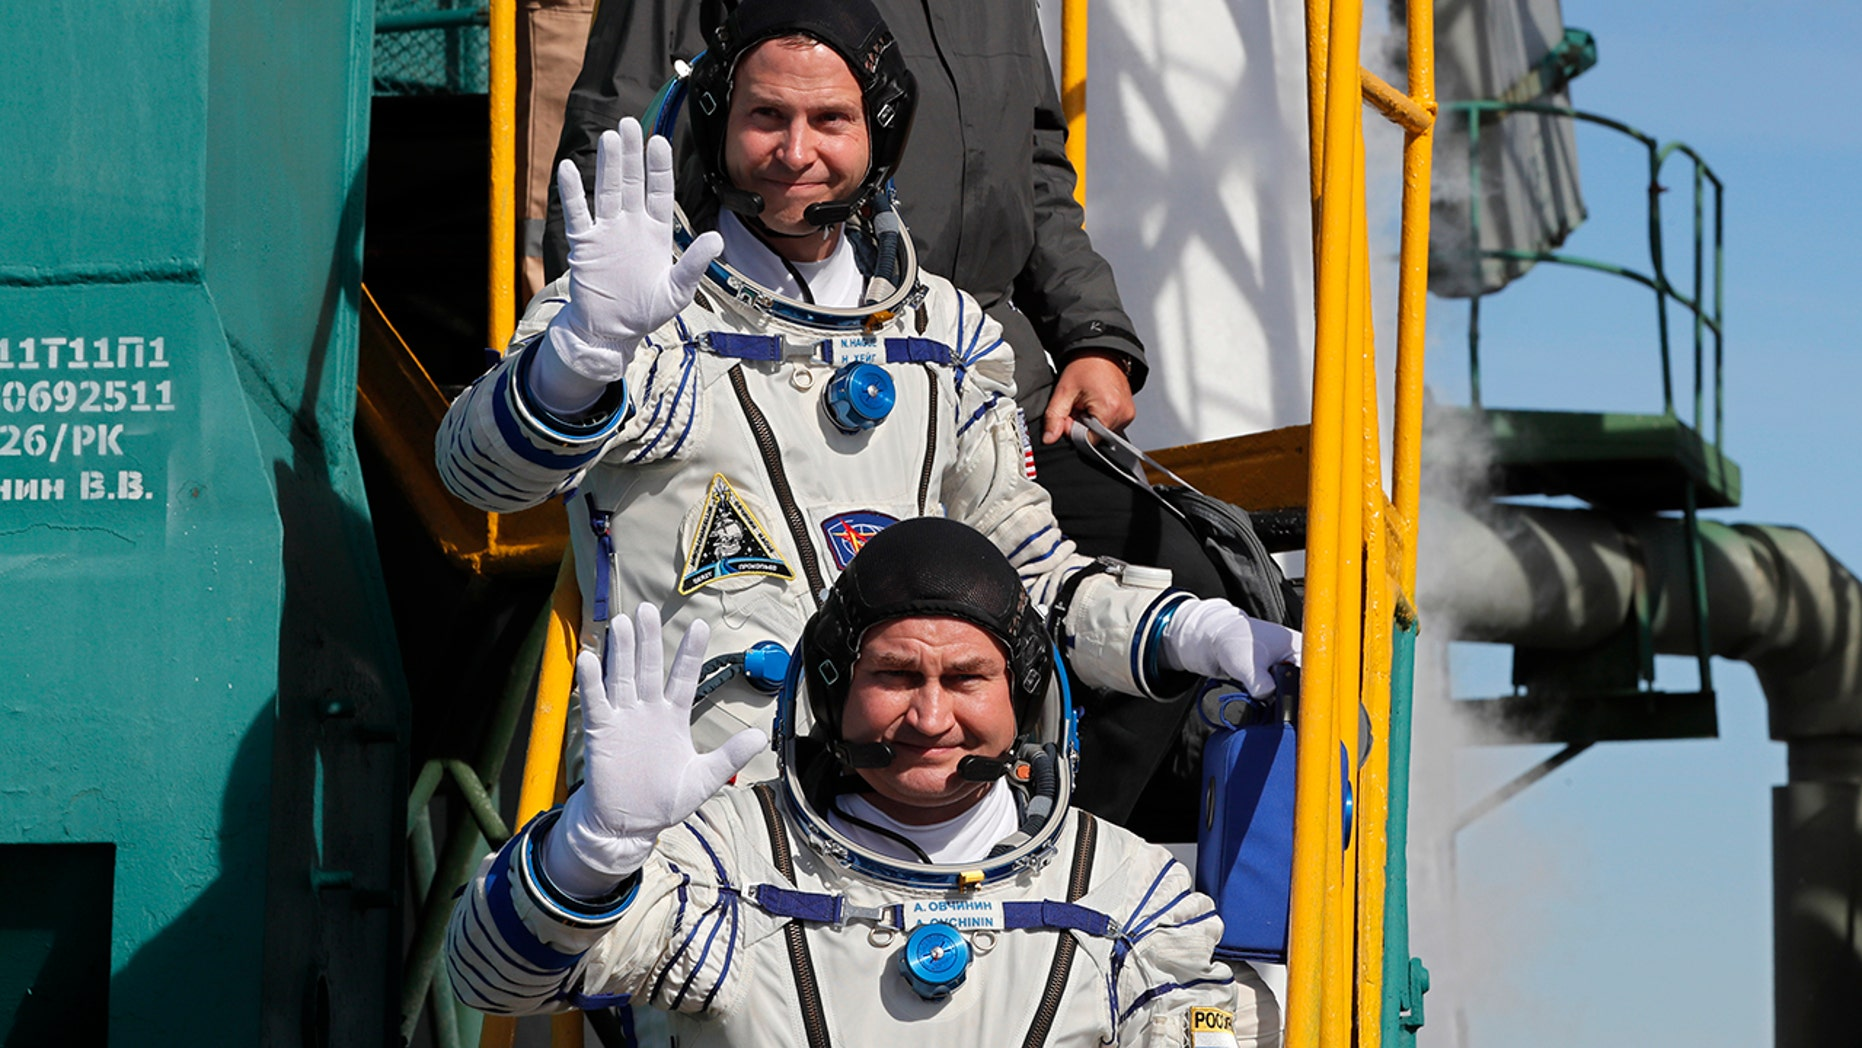 U.S. astronaut Nick Hague right and Russian cosmonaut Alexey Ovchinin crew members of the mission to the International Space Station wave as they board the rocket prior to the launch of Soyuz-FG rocket at the Russian leased Baikonur cosmodrome Kazakhs